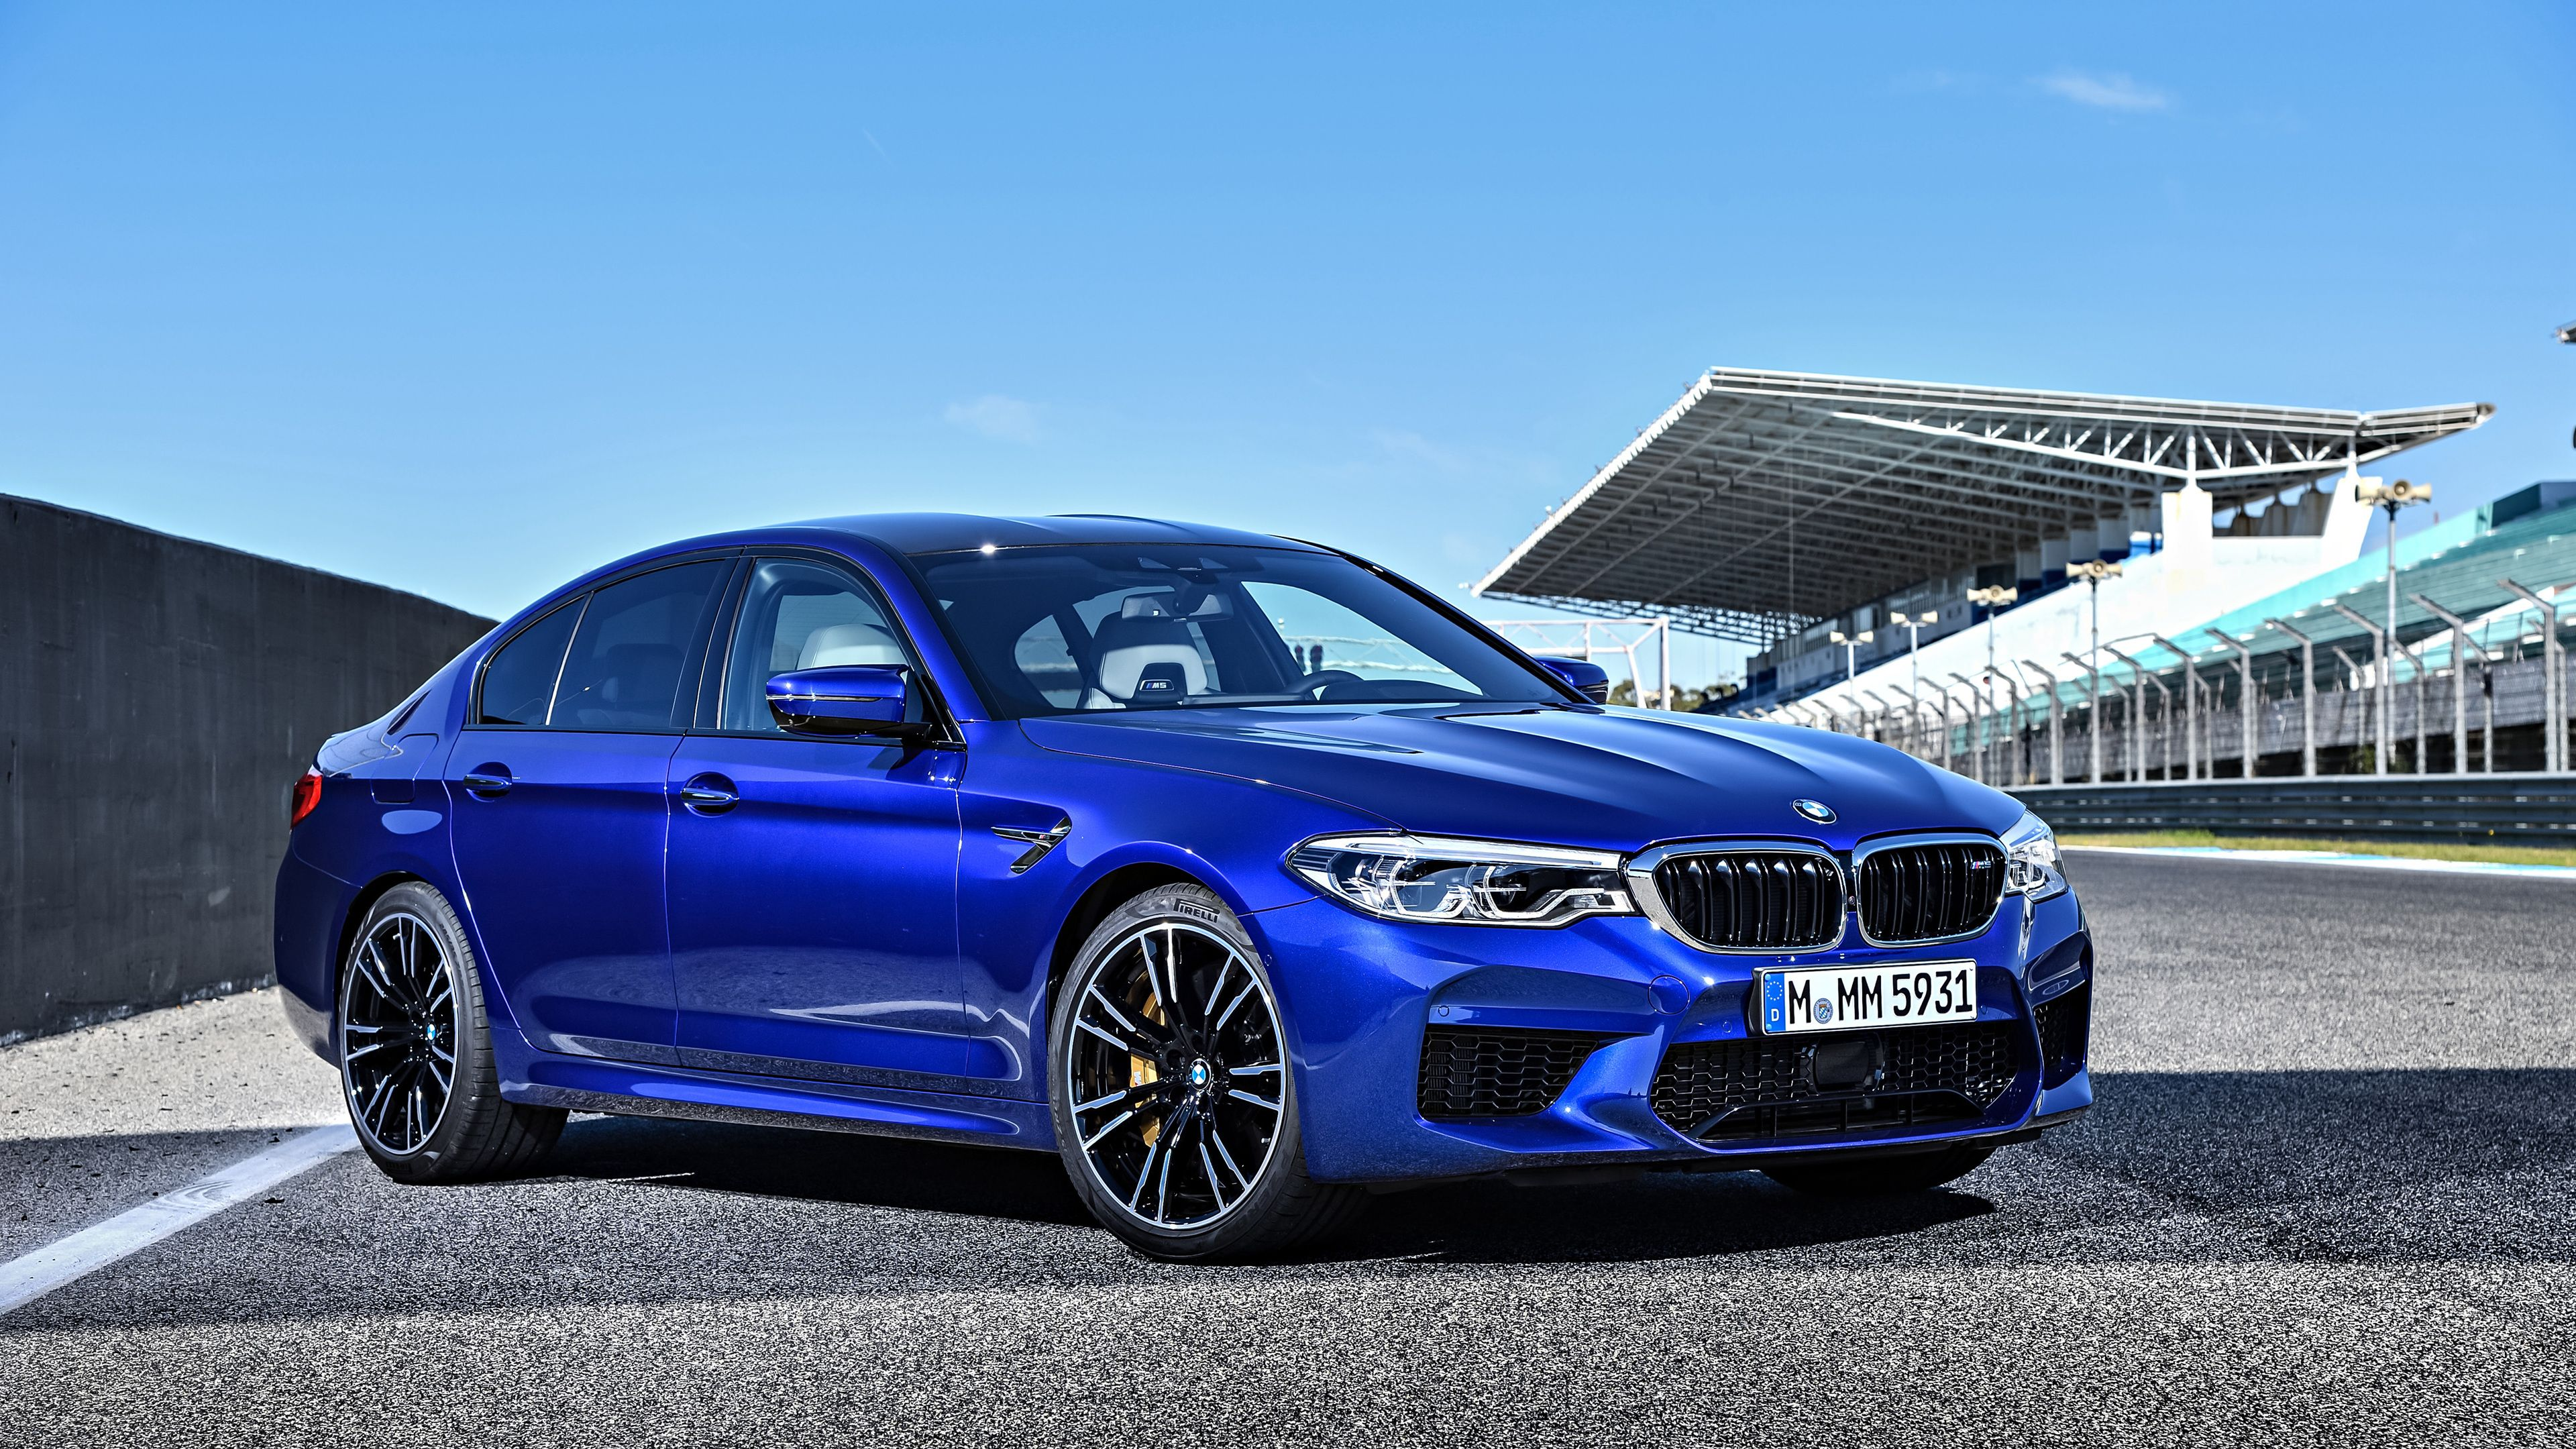 2018 Bmw M5 4k Hd Wallpapers Cars Wallpapers Bmw Wallpapers Bmw M5 Wallpapers 4k Wallpapers 2018 Cars Wallpapers Bmw Bmw Wallpapers Bmw M5